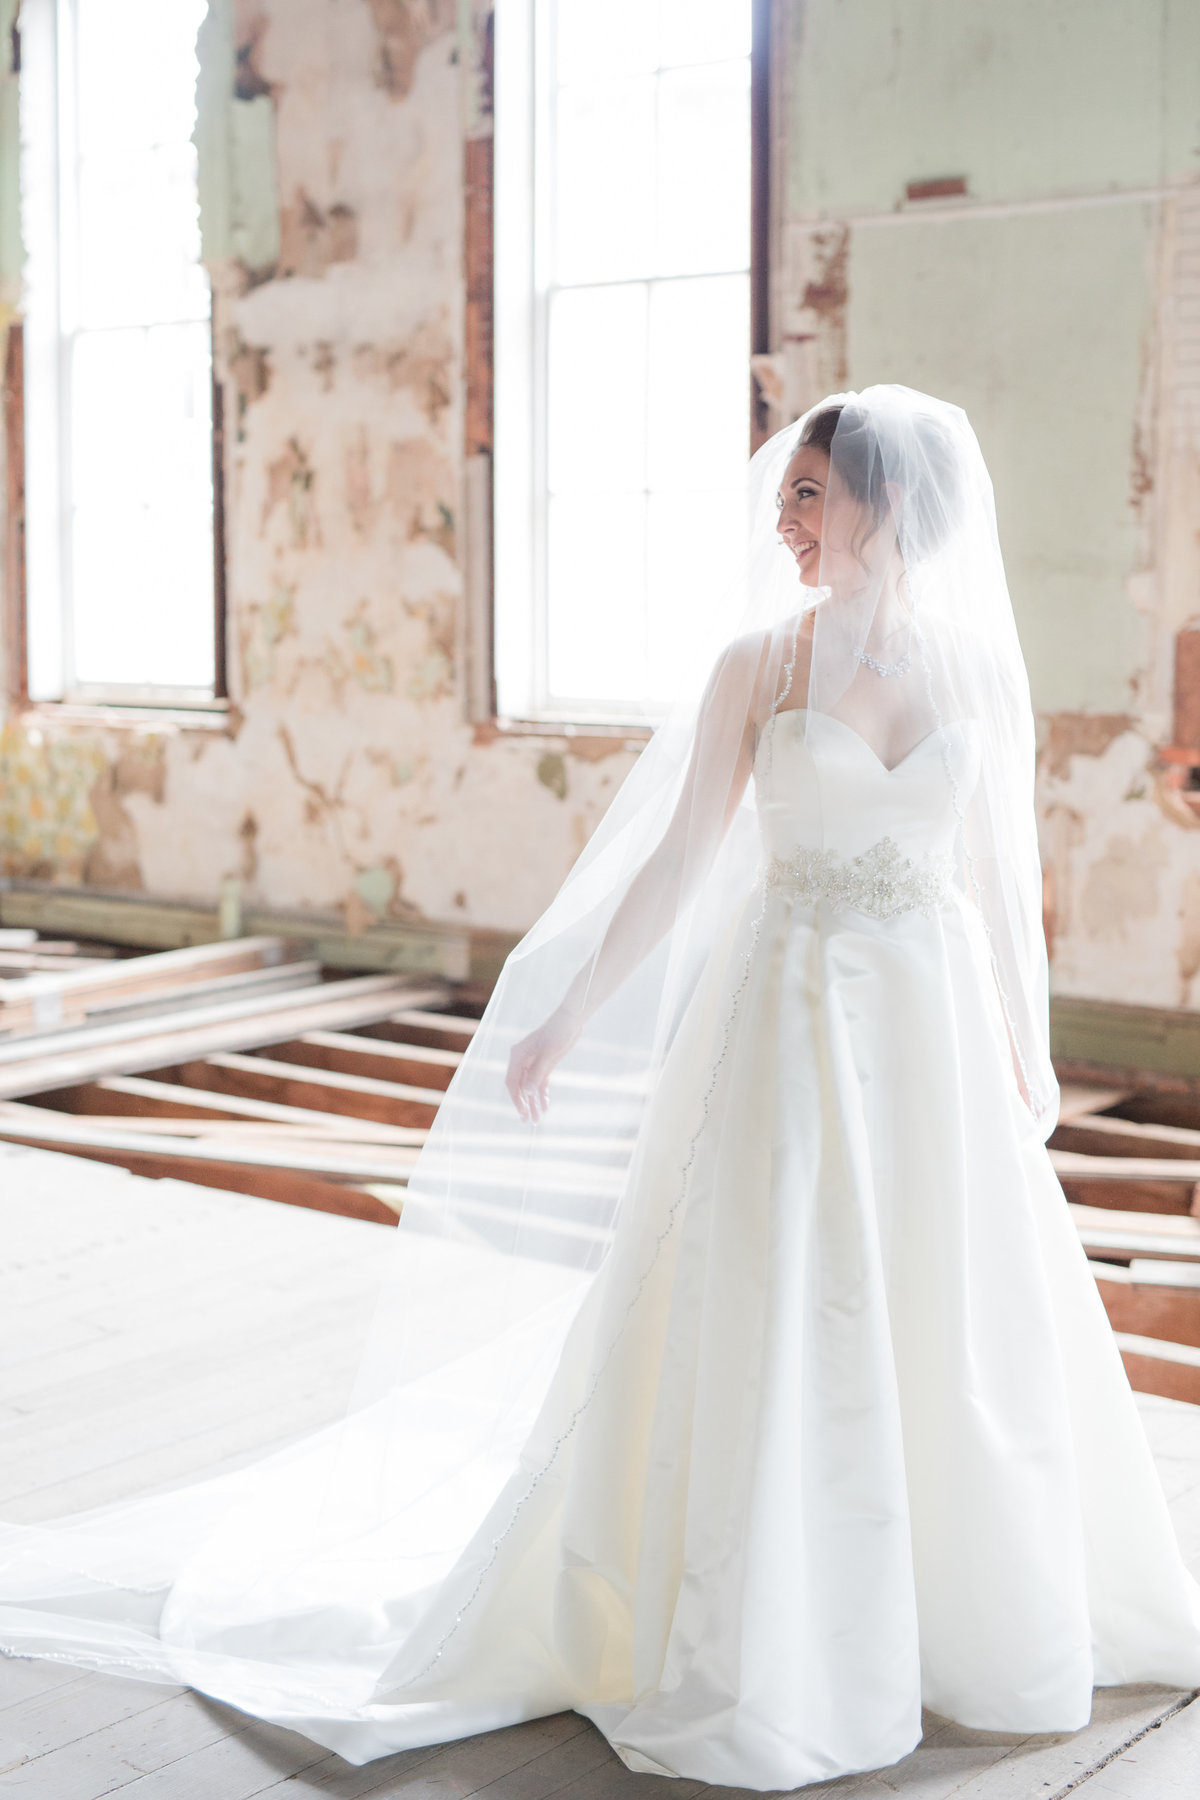 Bride portrait in third story at Excelsior Lancaster - By Maria Silva Goyo